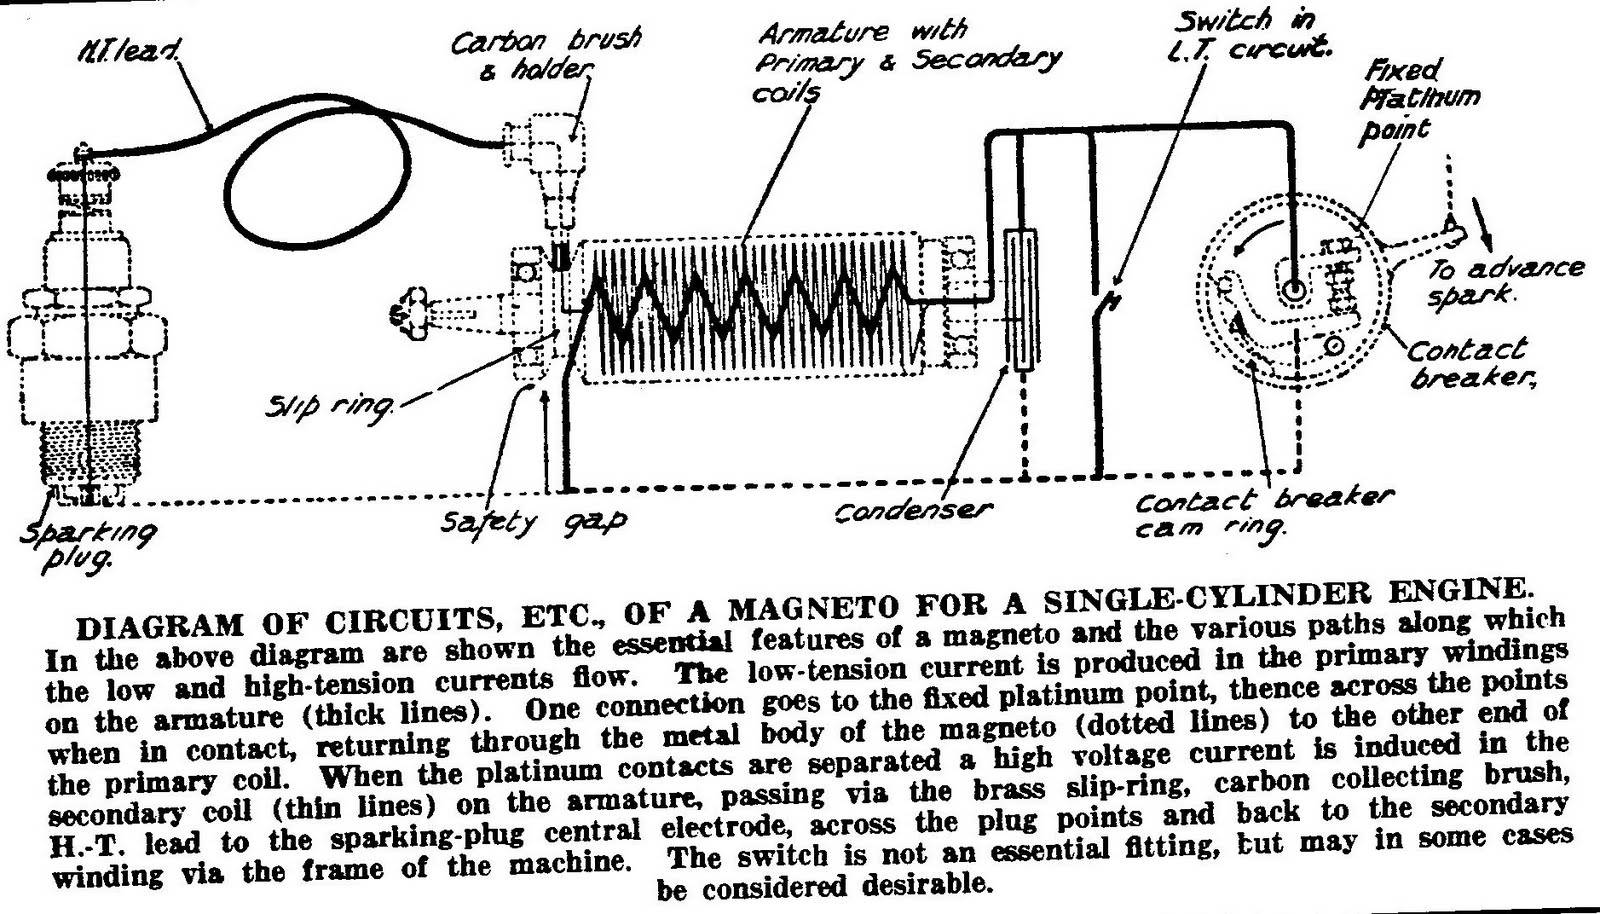 medium resolution of first a self explanatory wiring diagram from radco s vintage motorcyclists workshop showing how a magneto works